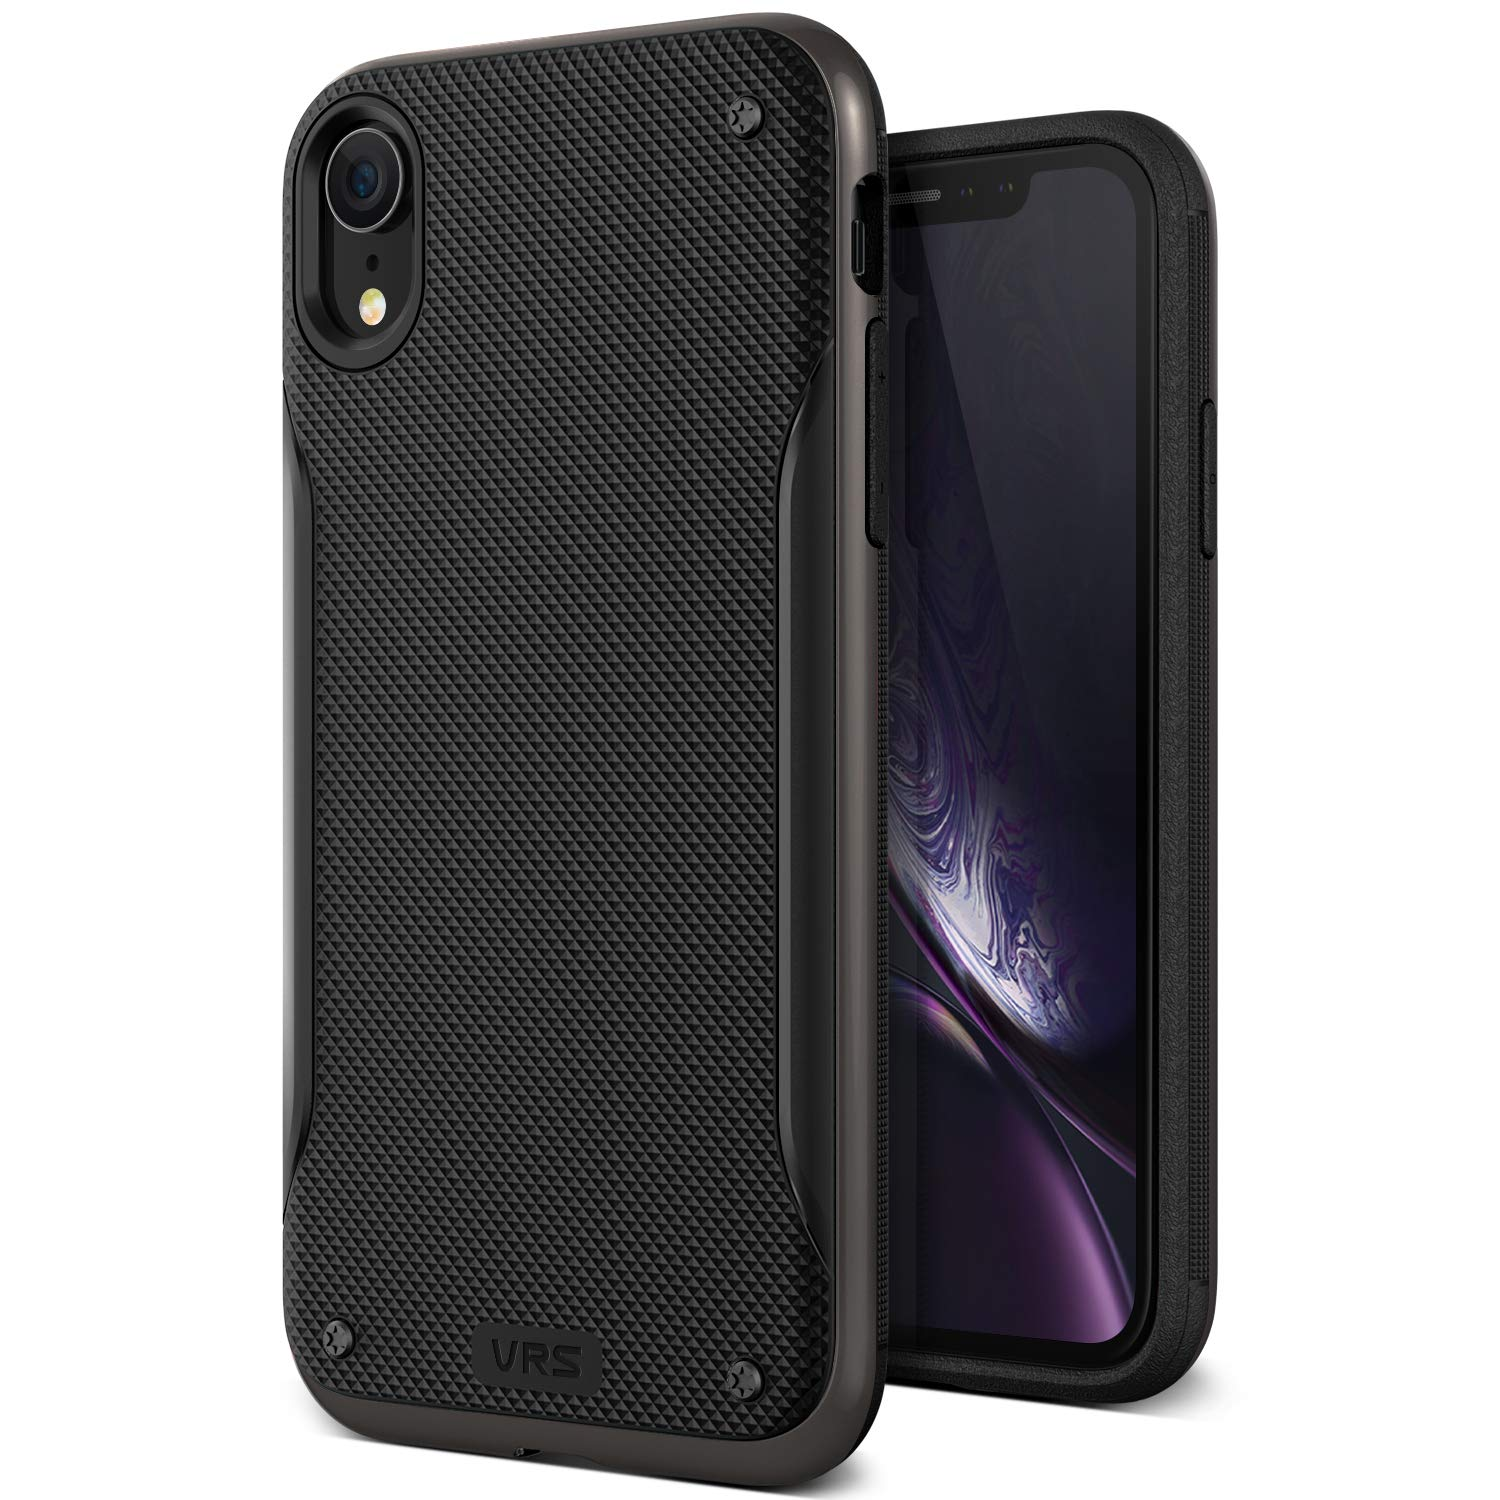 iPhone XR Case, VRS DESIGN [Metal Black] Dual Layer Slim Protective Case [High Pro Shield] Heavy Duty TPU Textured Body PC Bumper Compatible with Apple iPhone XR (2018)